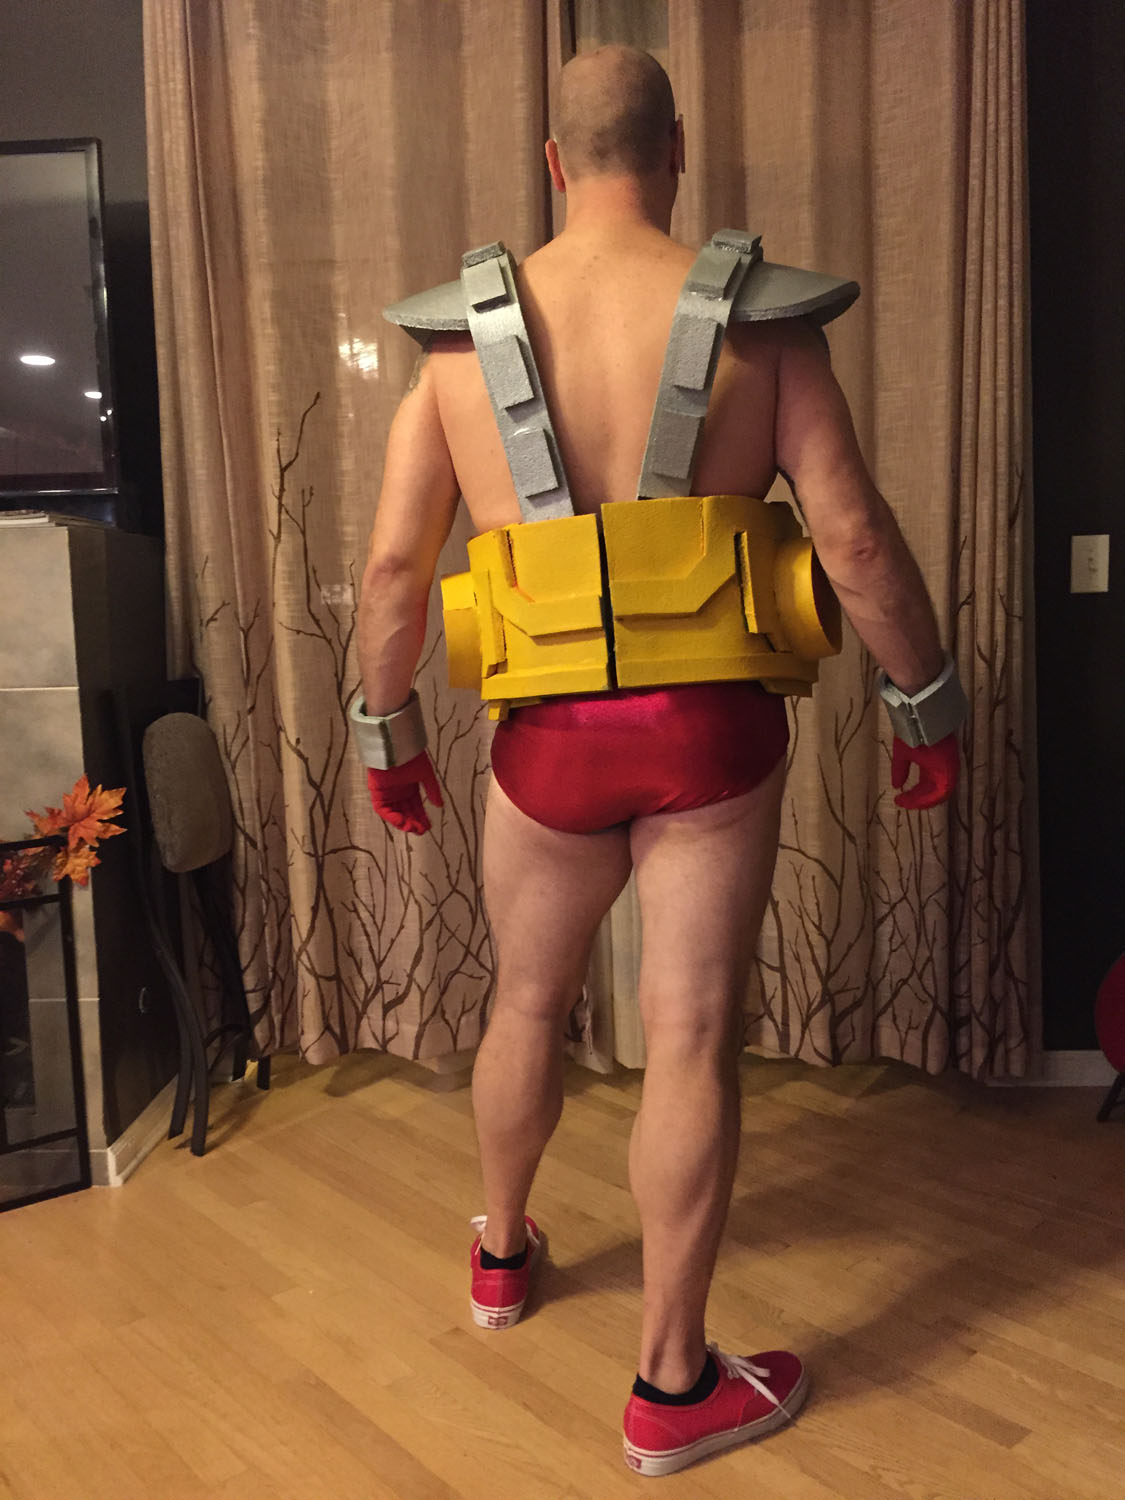 Dressing up as April and the Turtles is a solid group Halloween costume and youu0027ll even see Bebop and Rocksteady from time to time. But Krang is a rarity ... & Teenage Mutant Ninja Turtles Krang Halloween Costume Reddit | The ...